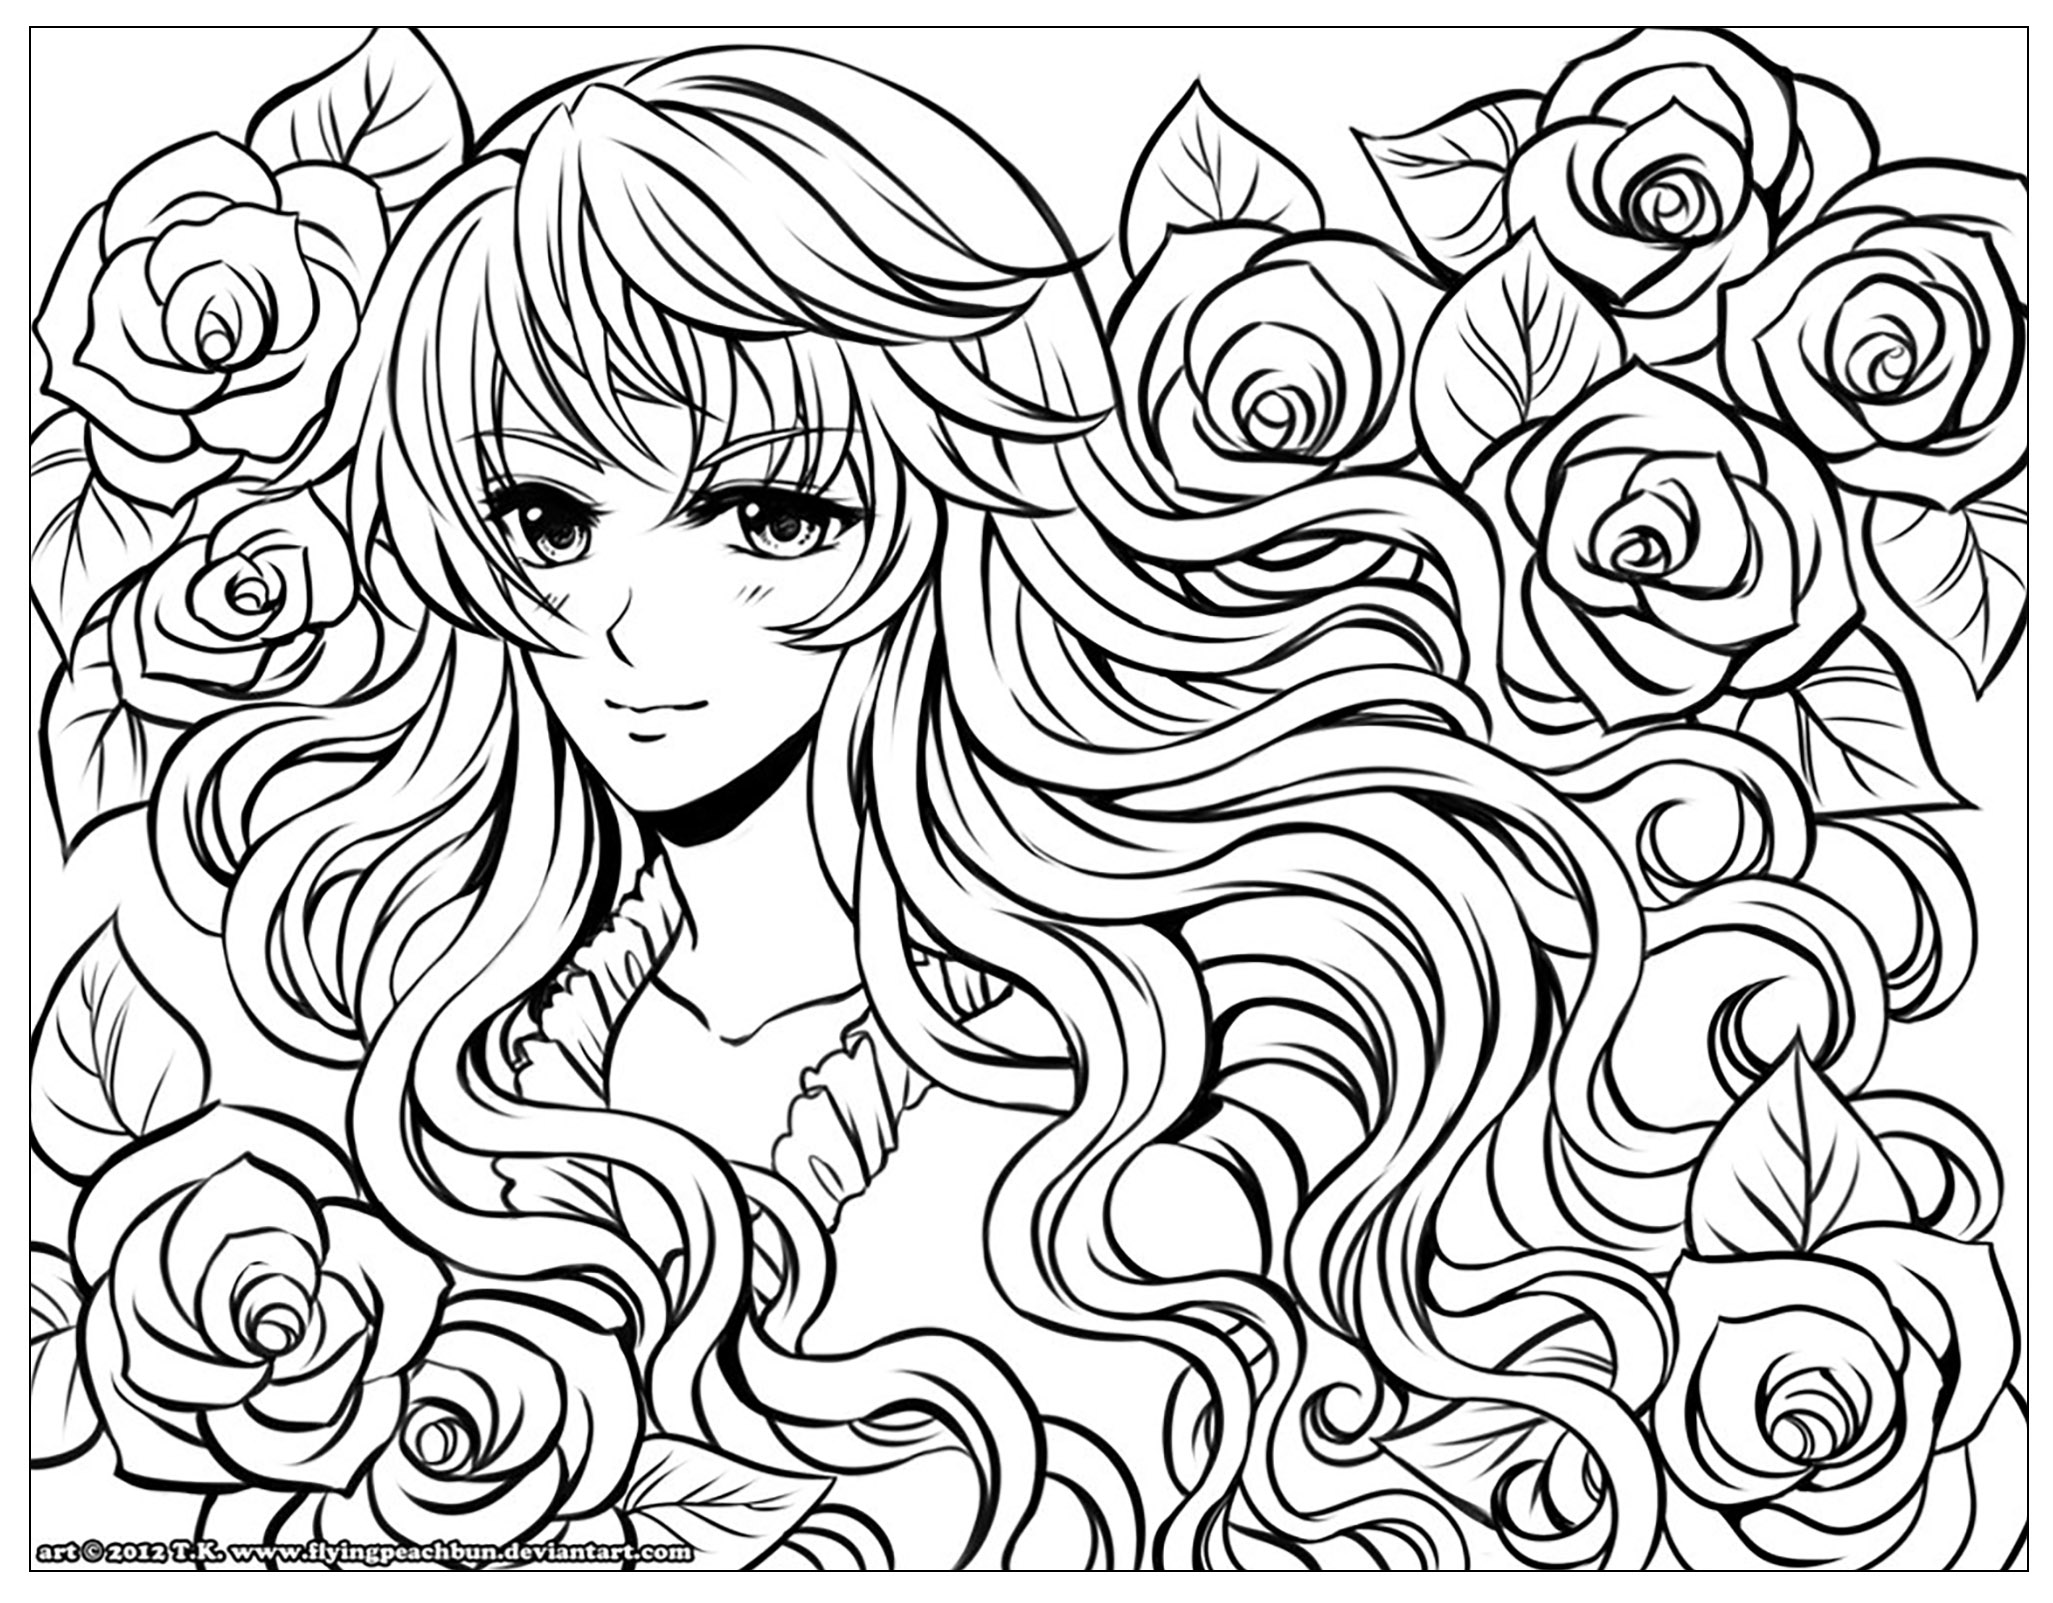 Manga girl with flowers by flyingpeachbun | Manga / Anime ...